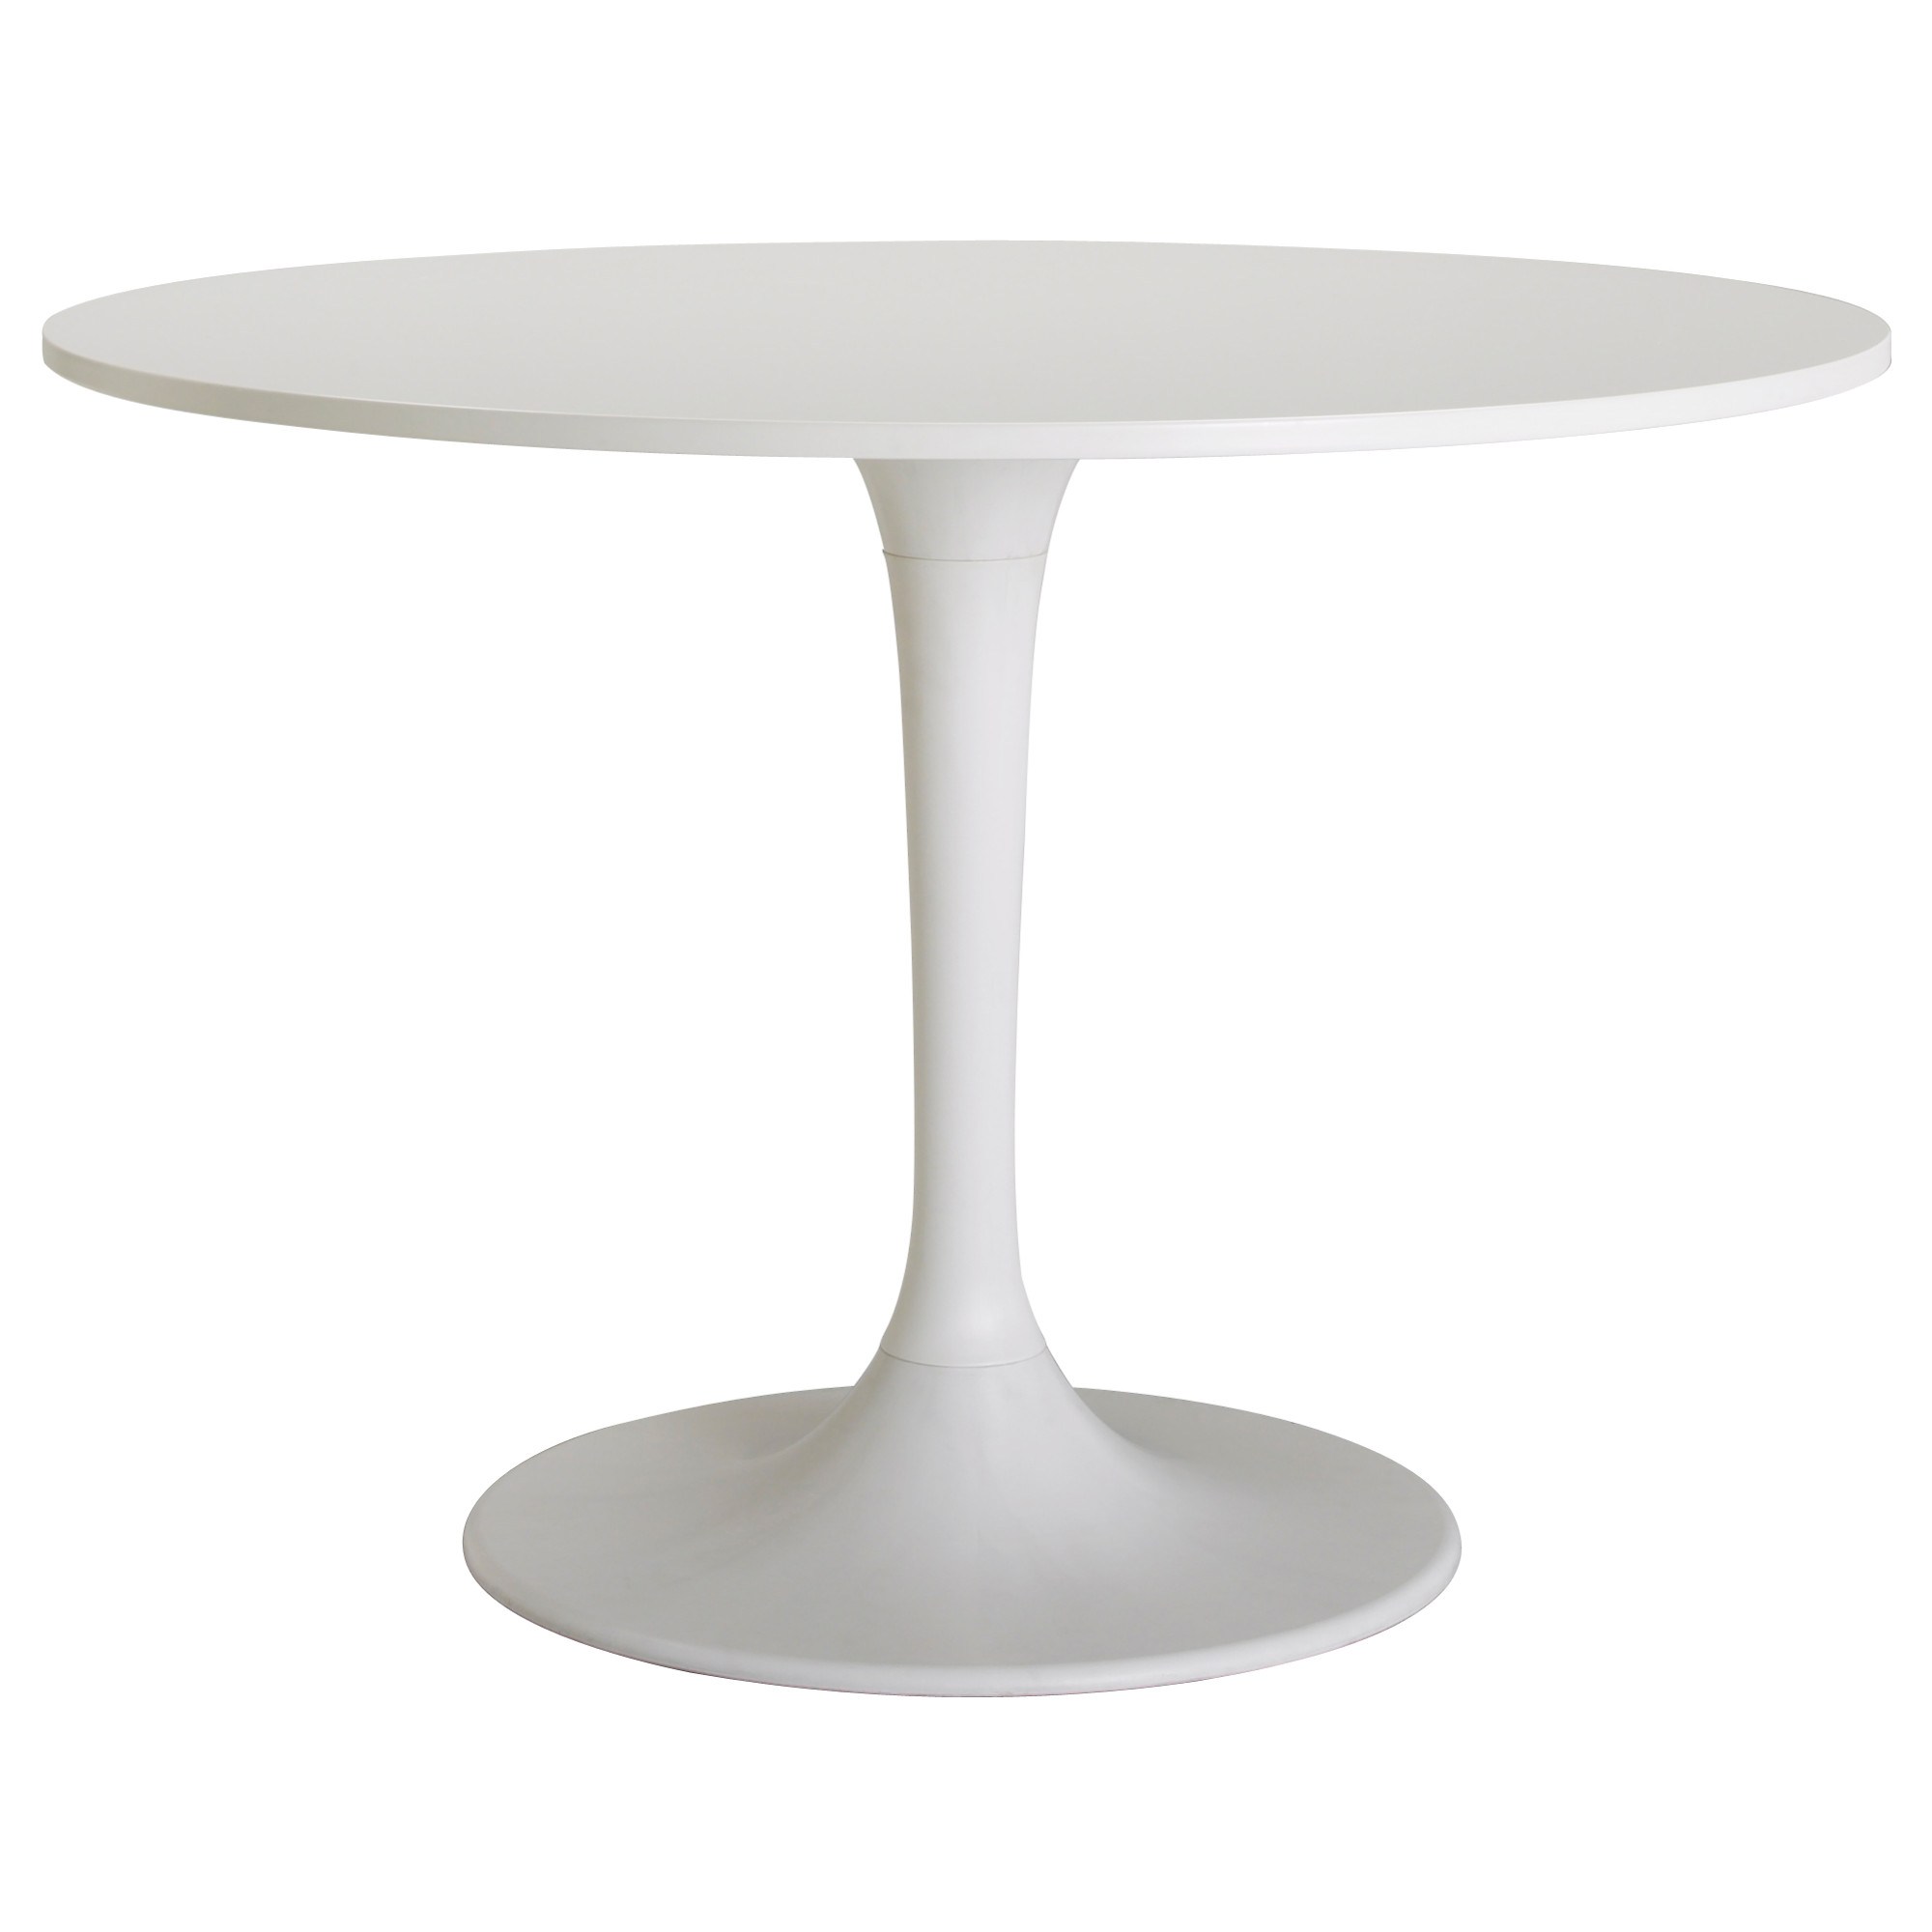 Plastic Stoelen Ikea Beautiful White Round Kitchen Table And Chairs | Homesfeed